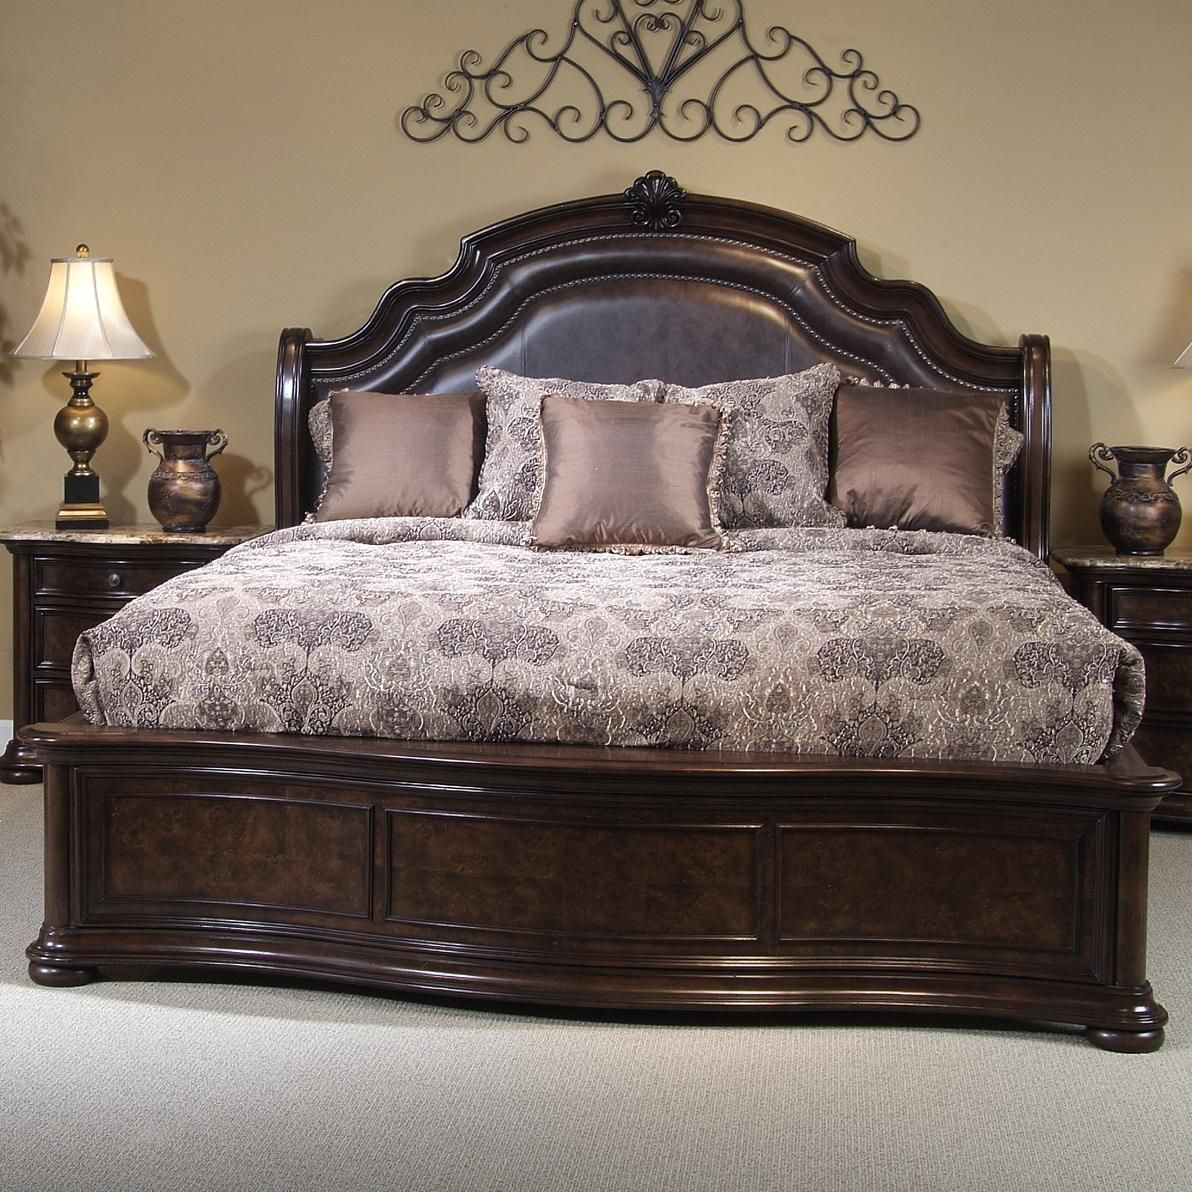 Beautiful king size bed frame using brown leather for King size headboard